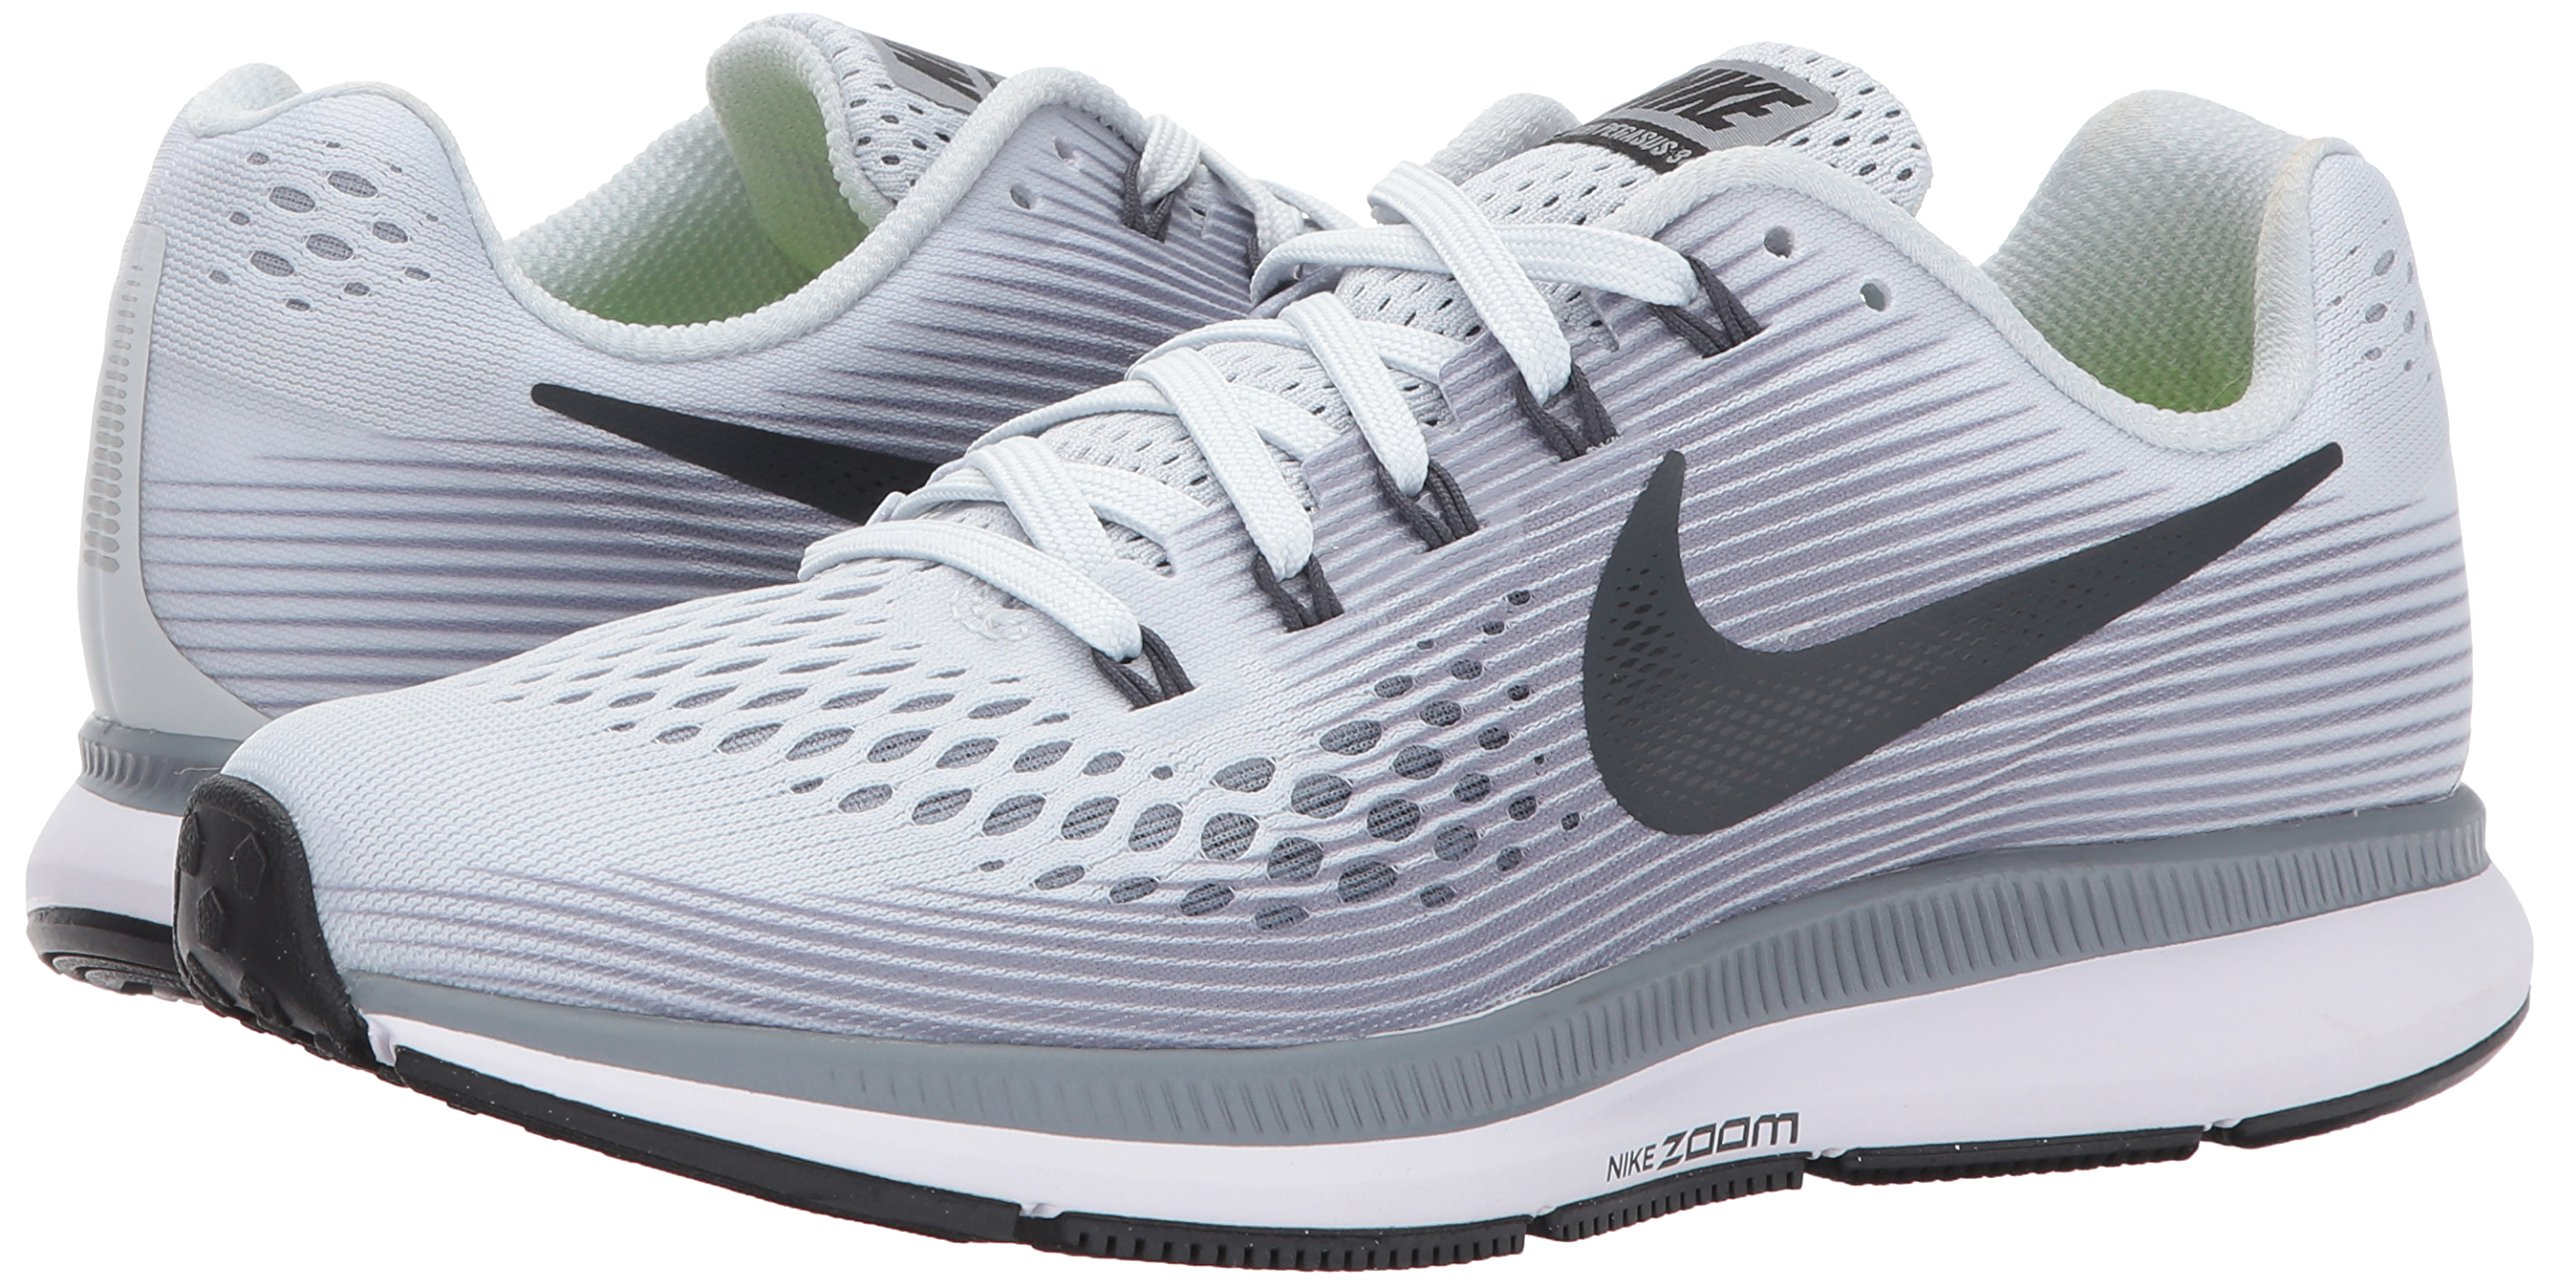 Nike Women's Air Zoom Pegasus 34 Running Shoes-Pure Plantinum/Antracite-6 by Nike (Image #6)